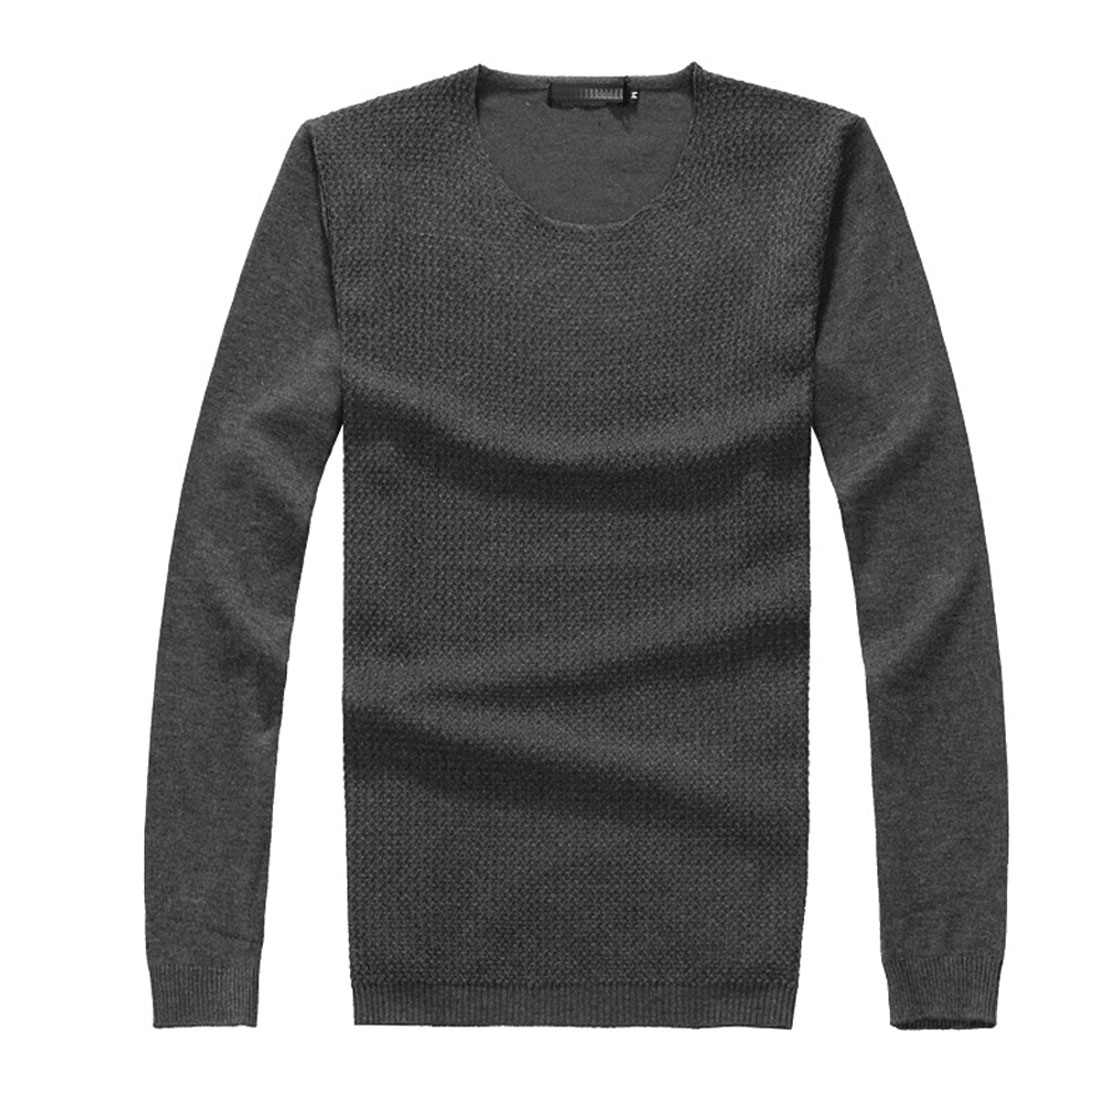 Mens Dark Gray Round Neck Long Sleeves Knit Pullover Shirt S